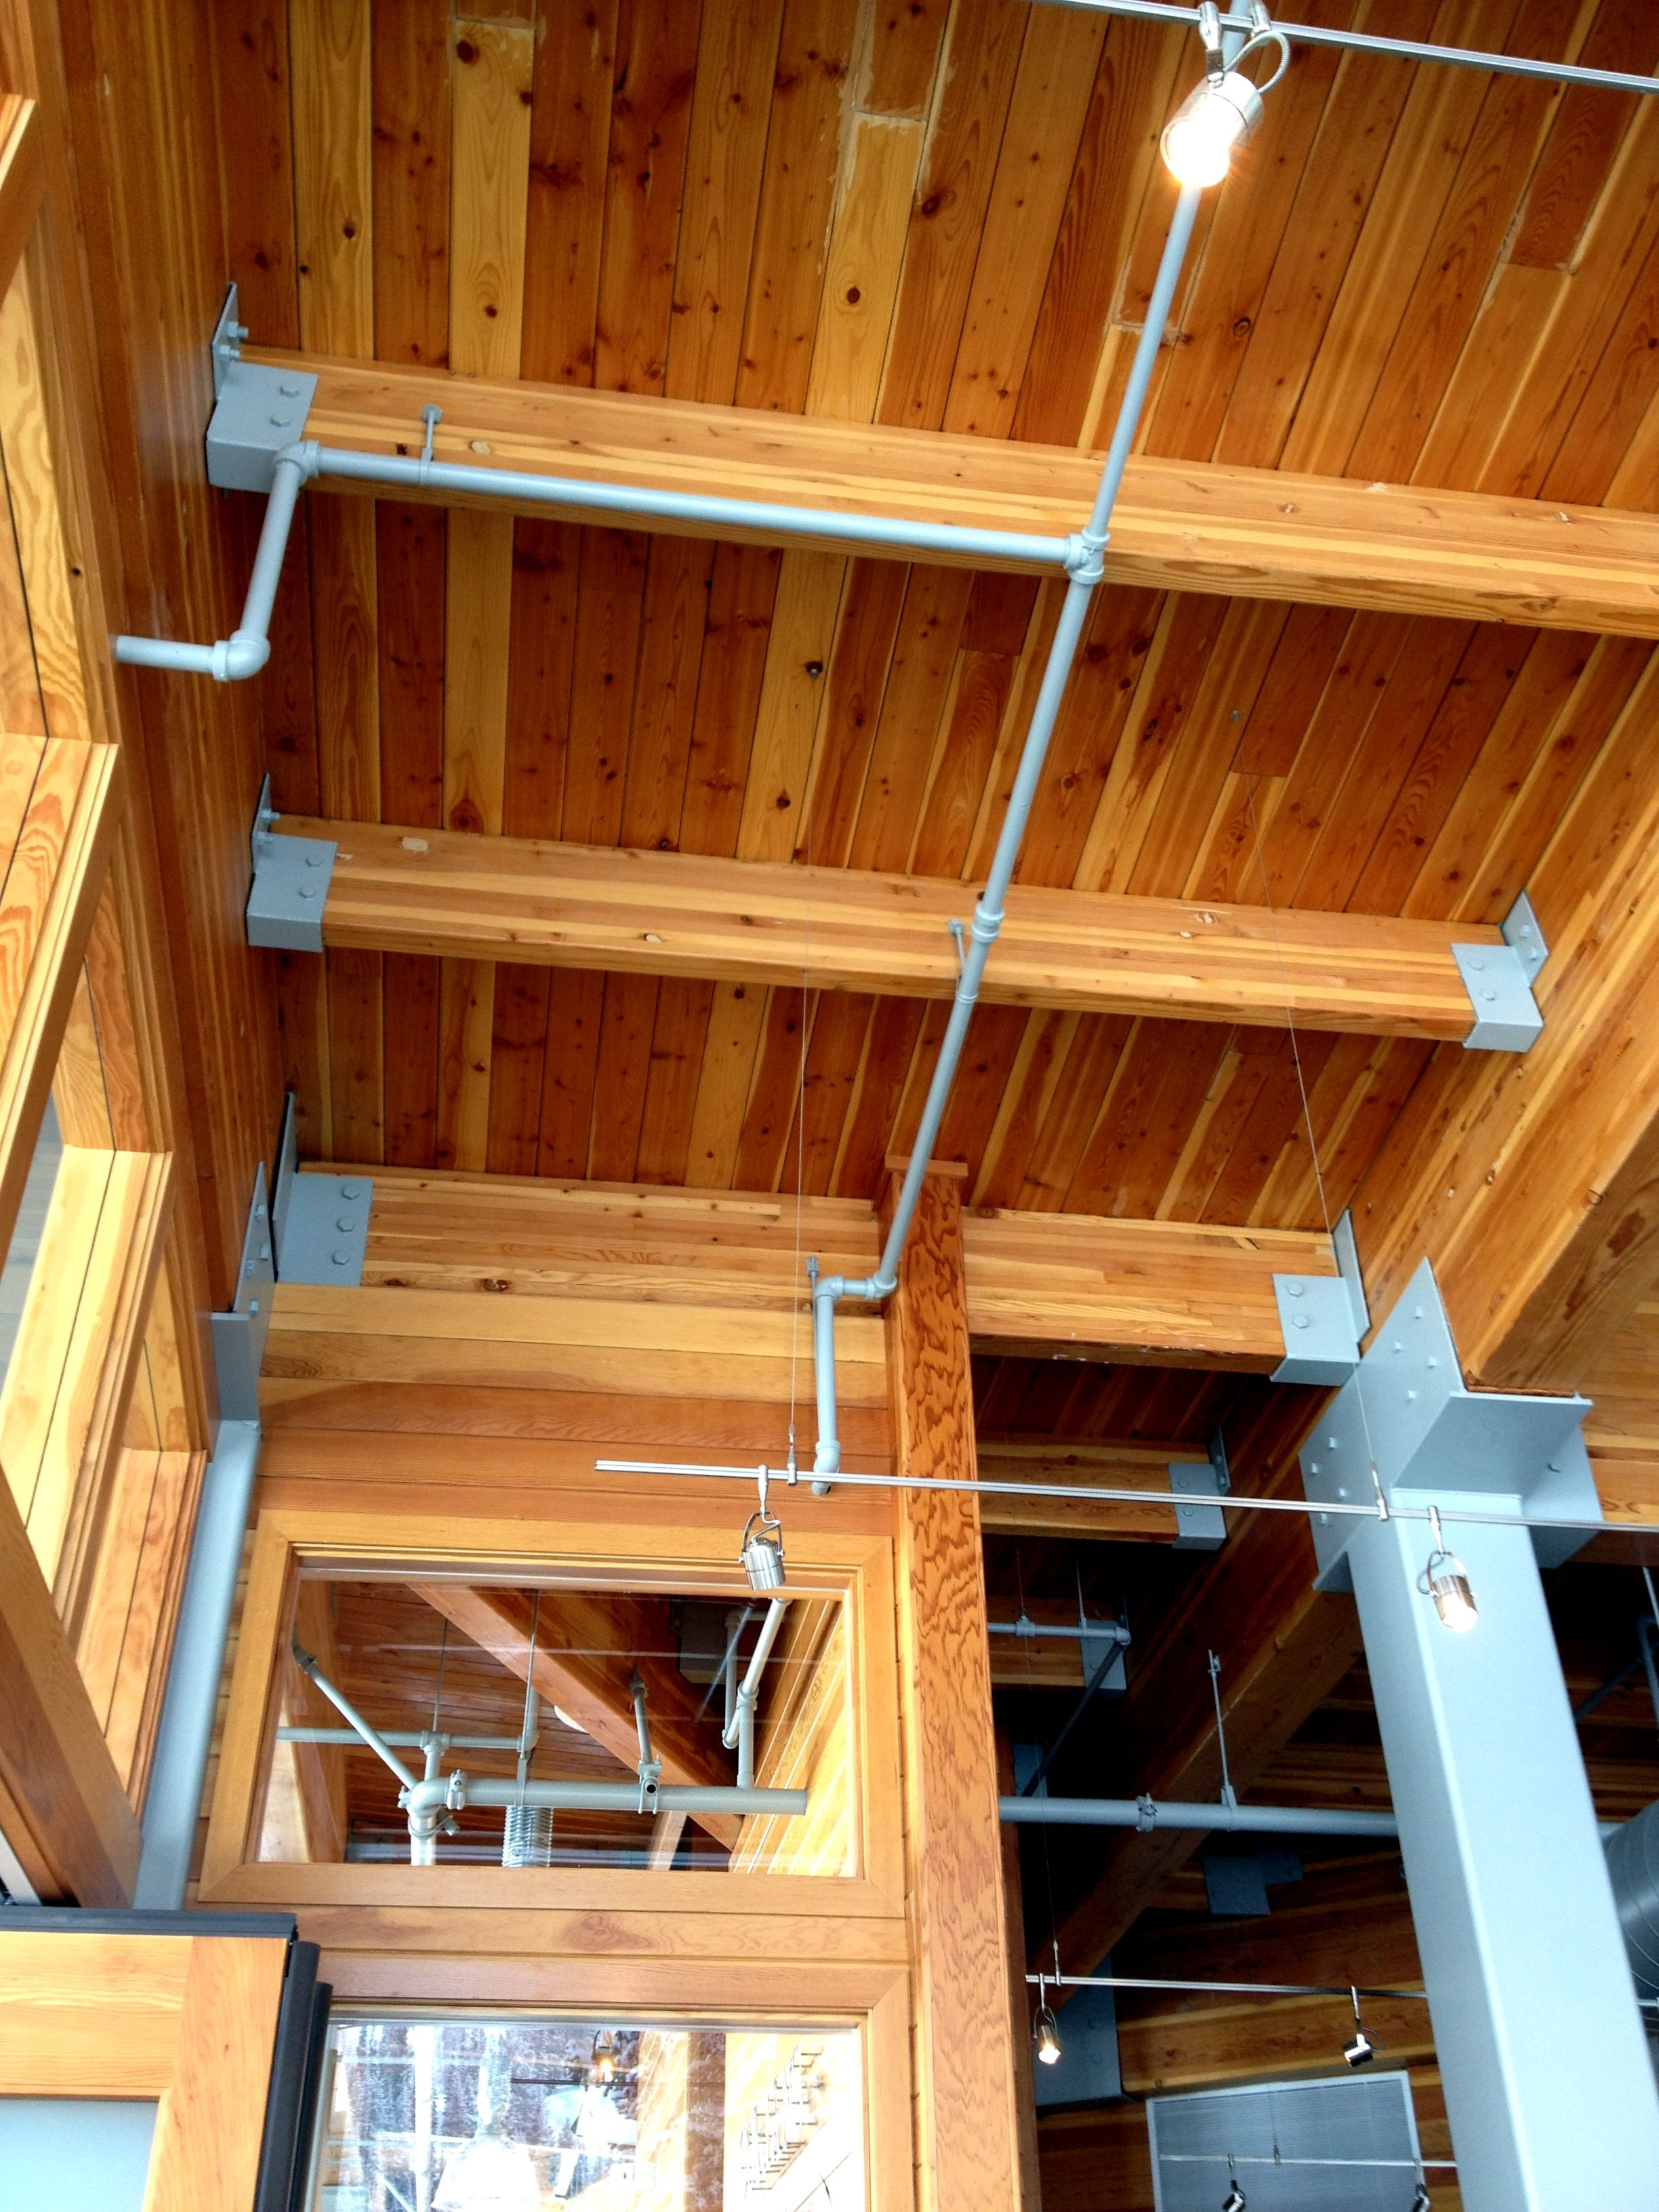 Douglas Fir Laminated Beams With 2 X 6 Roof Decking At Collins Grill At Alta Ski Resort Ut Exterior Wood Interior And Exterior Roof Deck